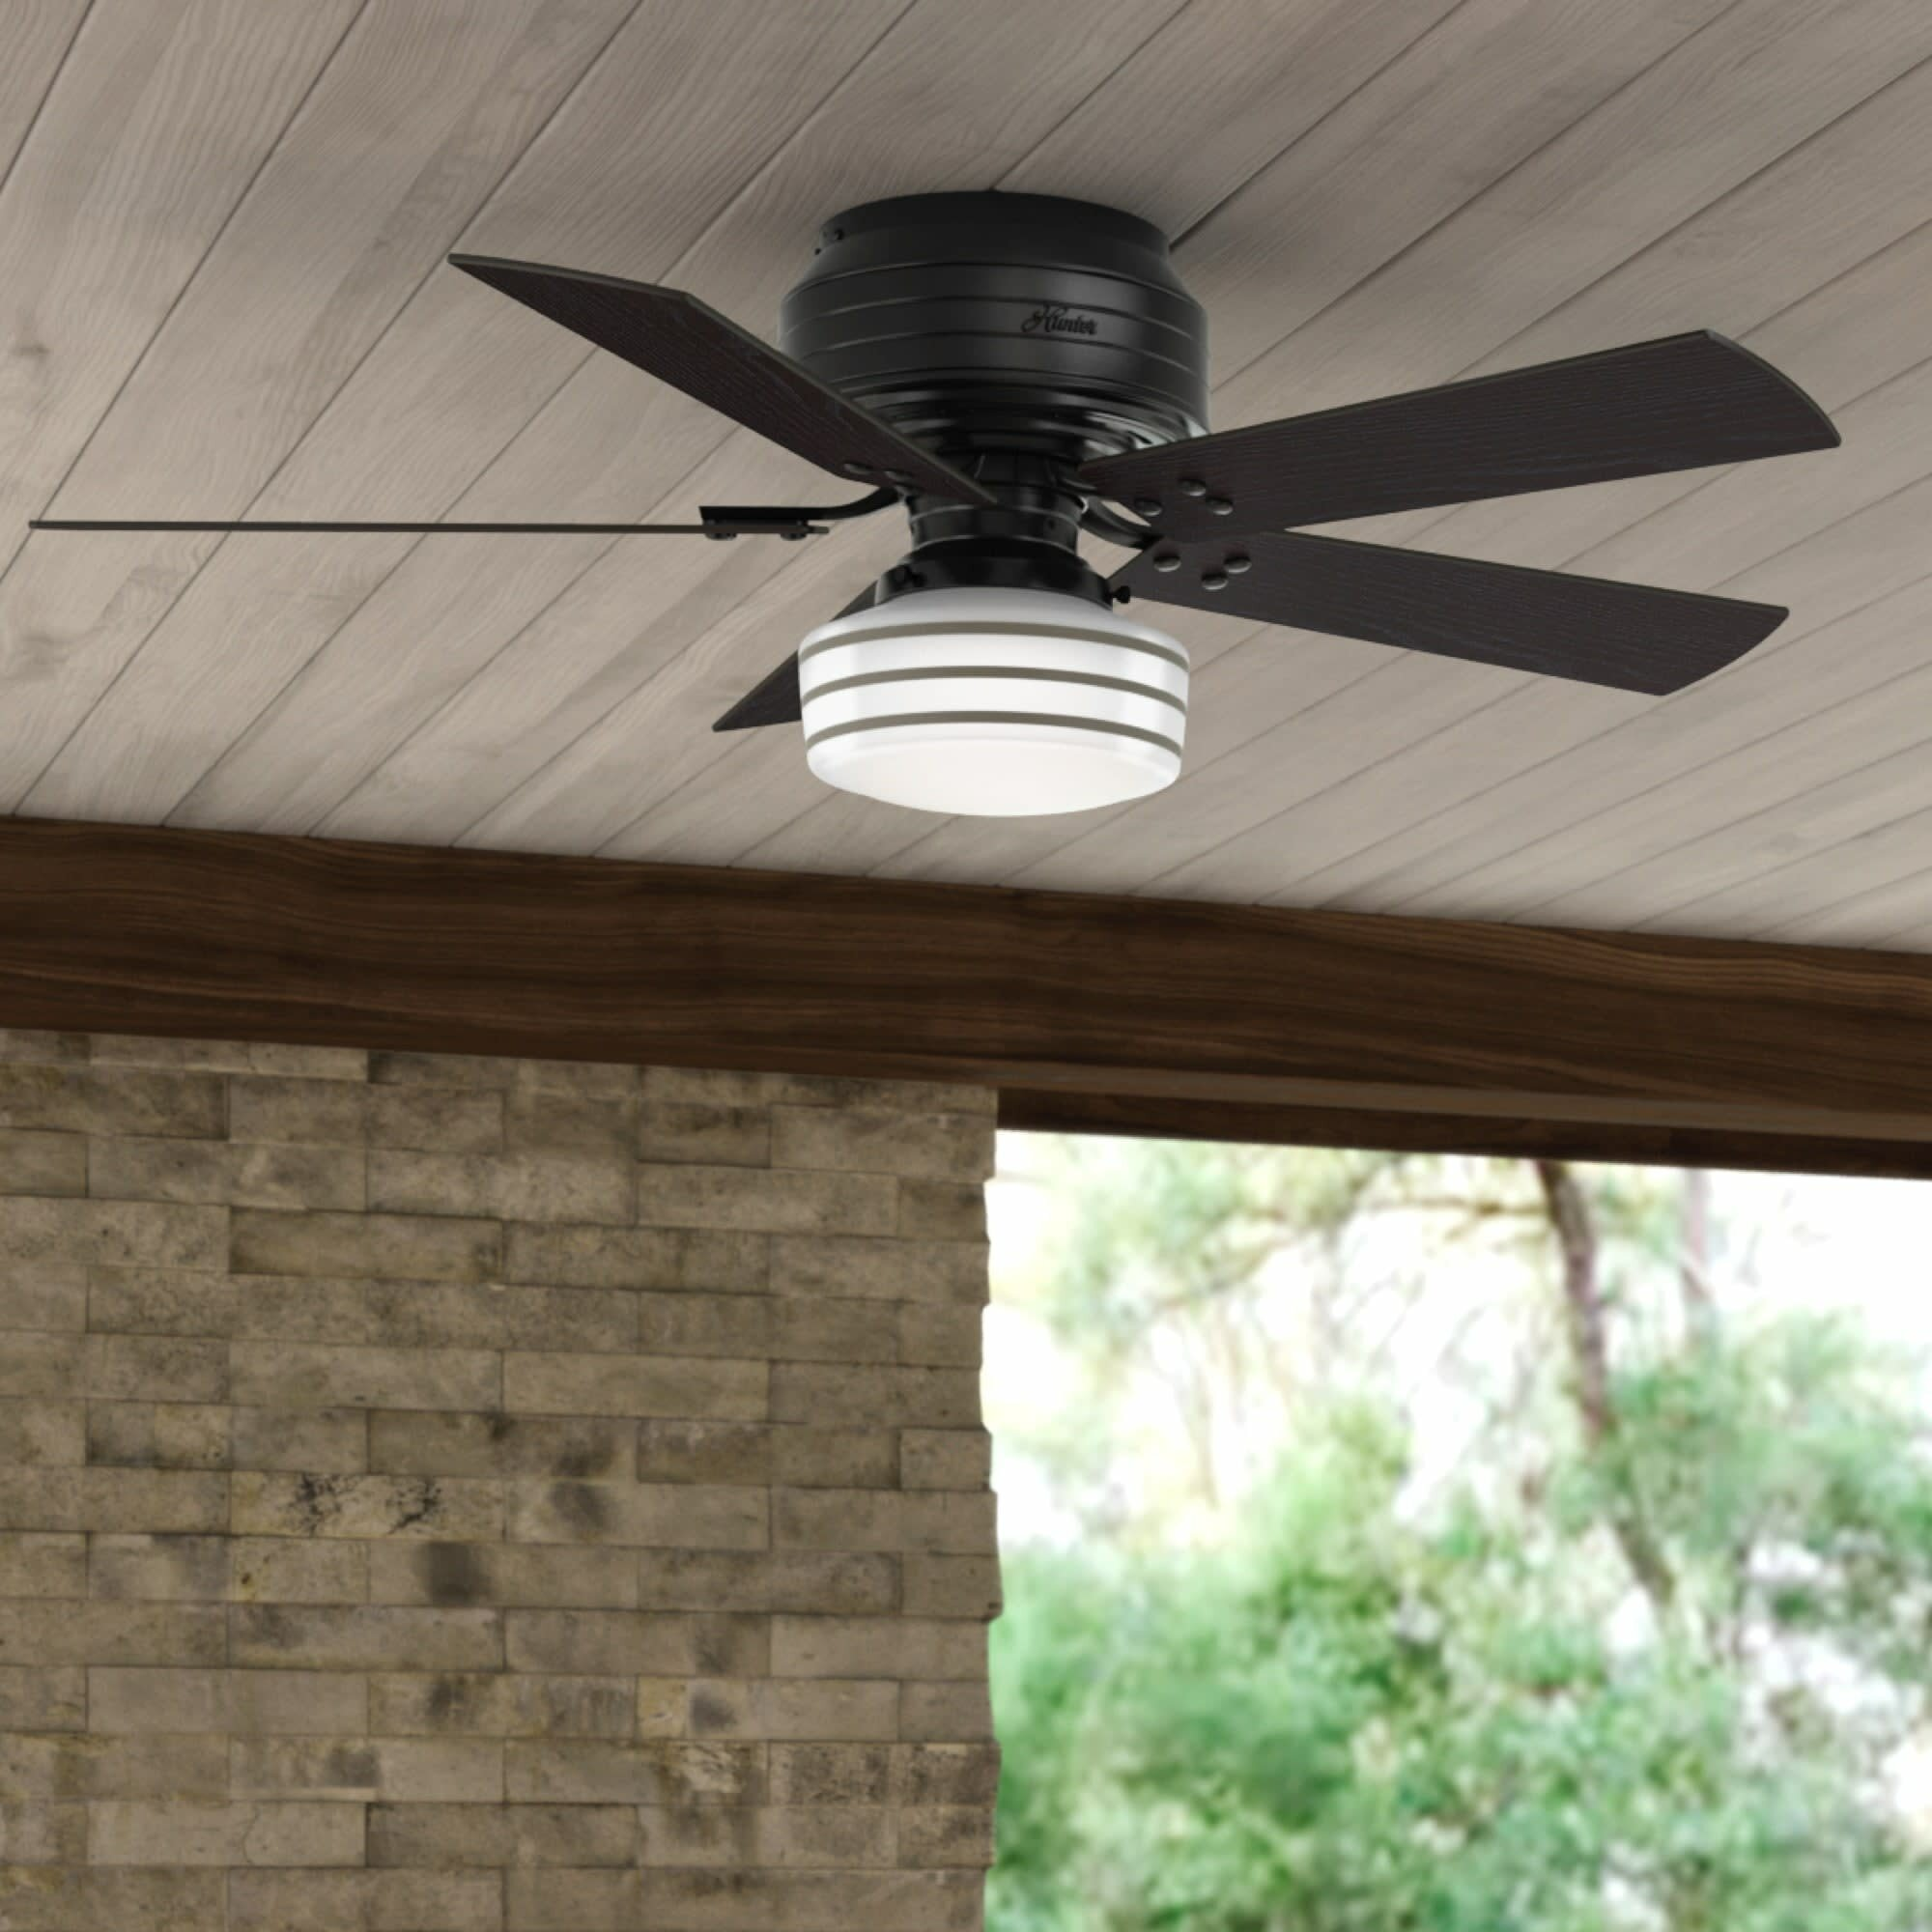 52 Cedar Key 5 Blade Flush Mount Ceiling Fan With Remote Control And Light Kit Included Reviews Joss Main